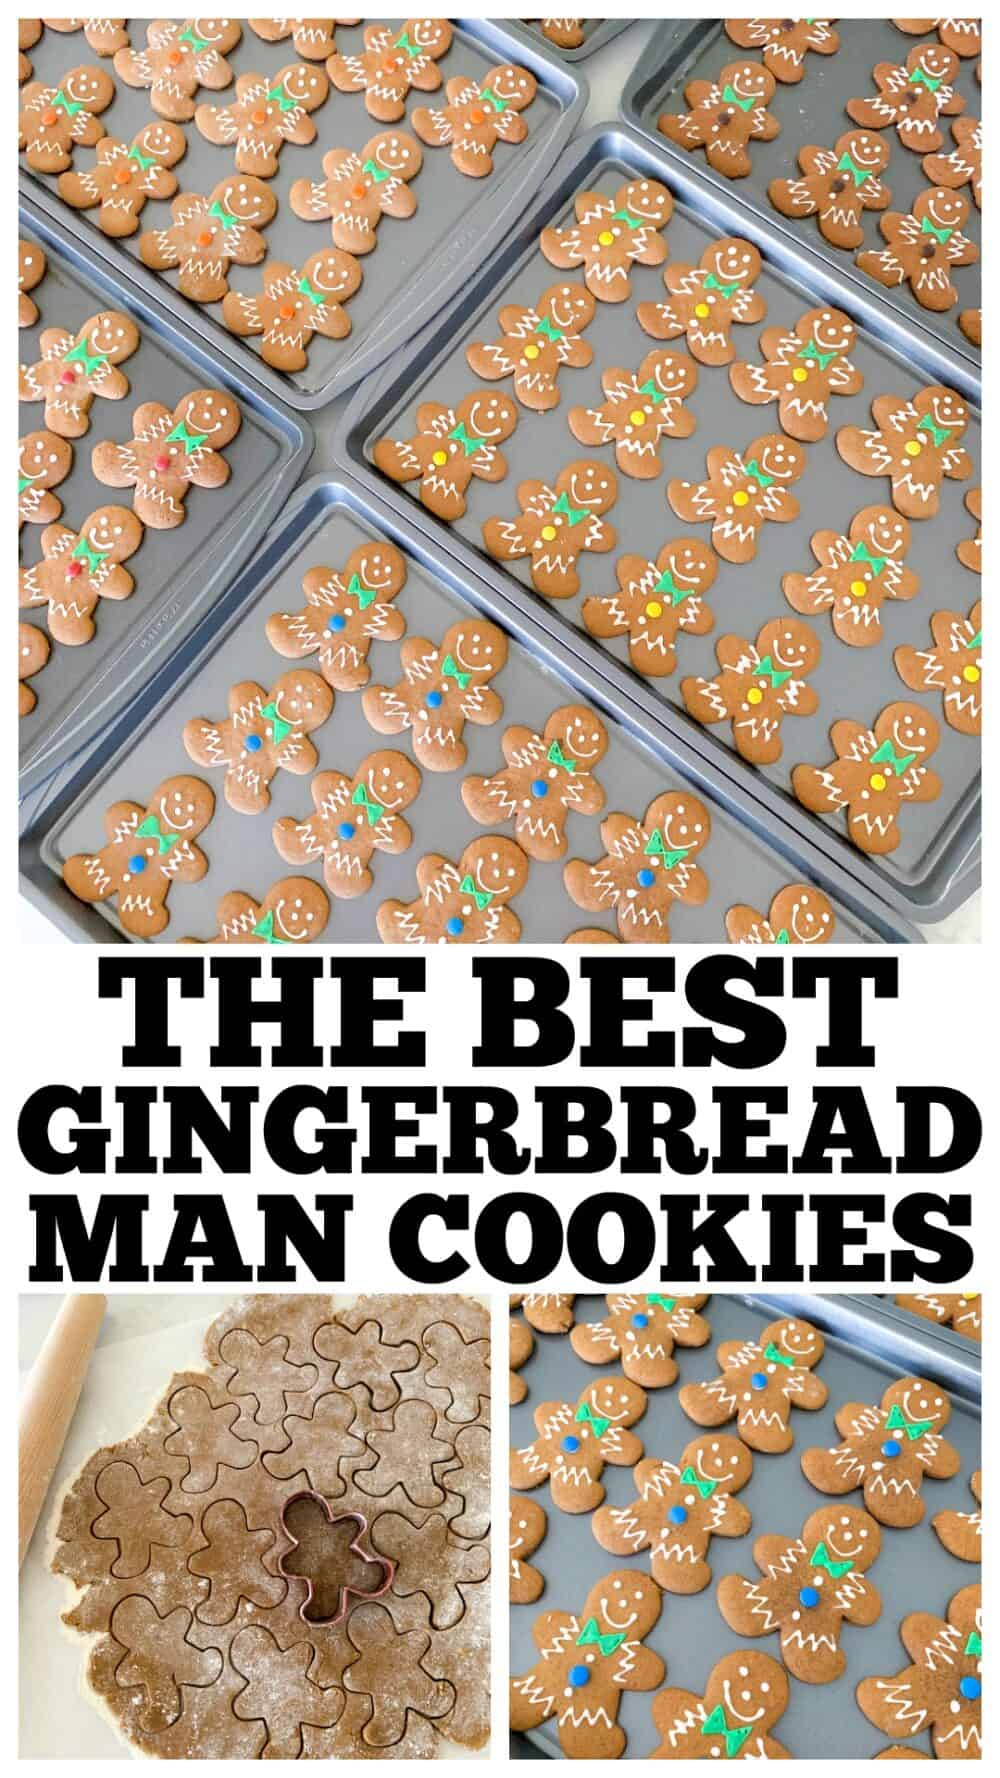 photo collage of gingerbread man cookies